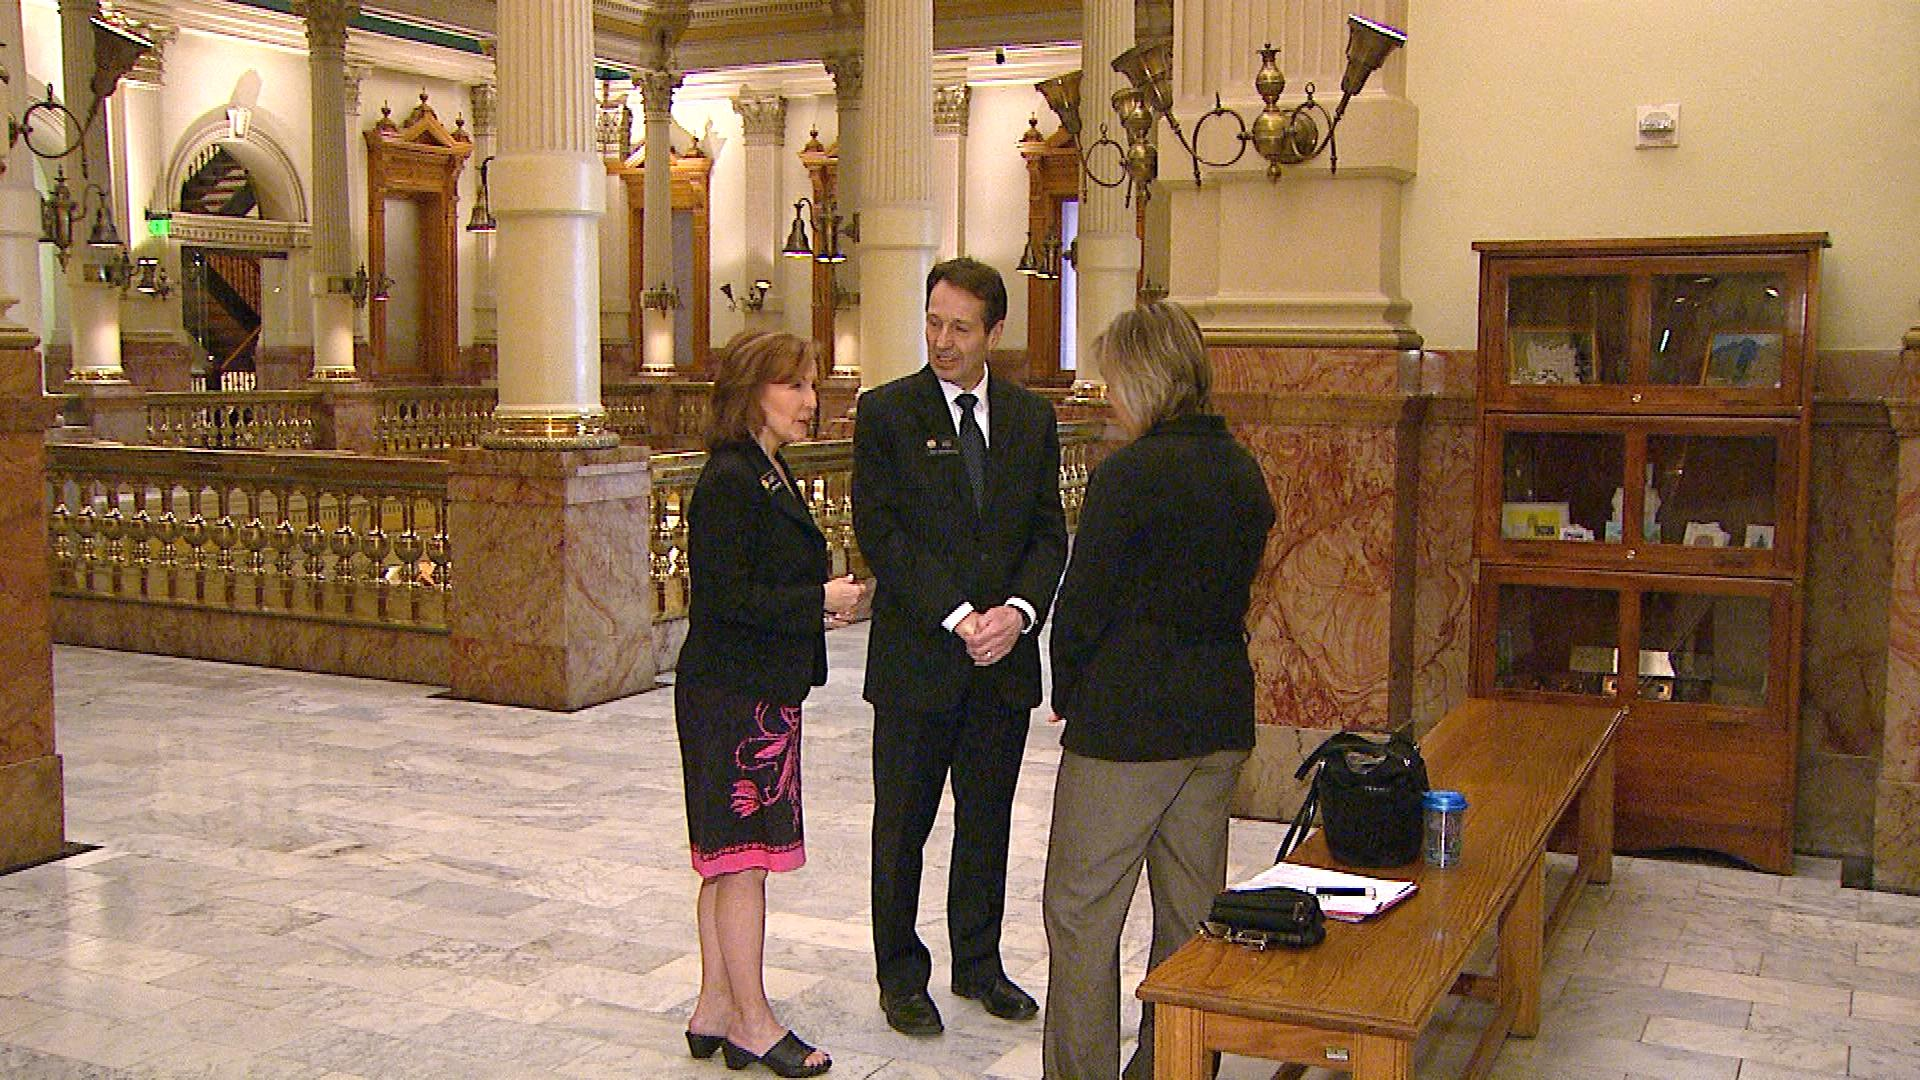 Sen. Linda Newell and Rep. Daniel Kagan are interviewed by CBS4's Shaun Boyd (credit: CBS)